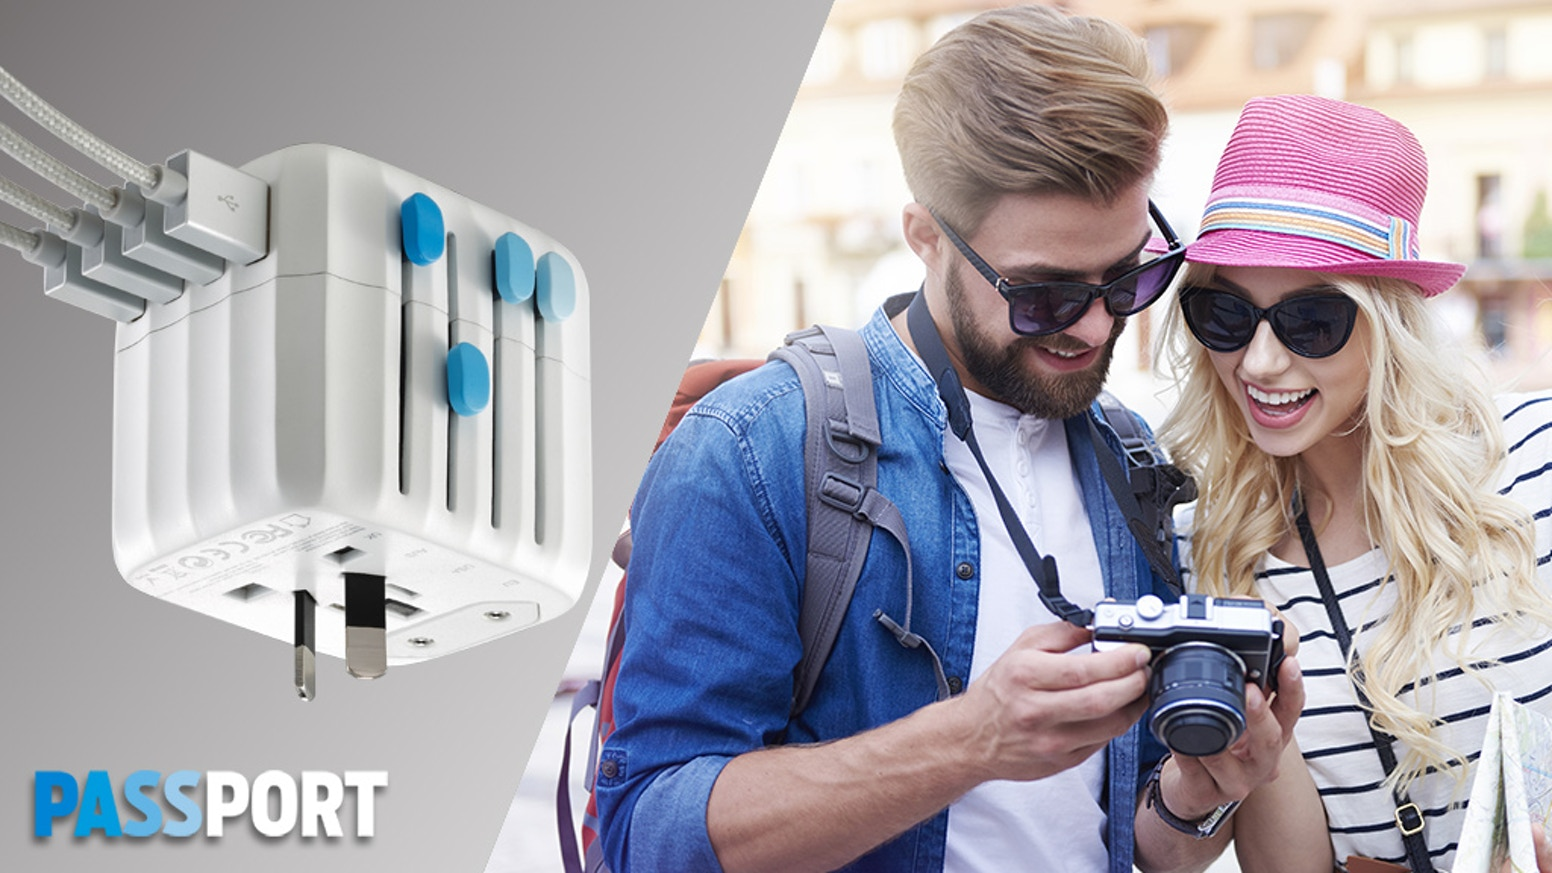 Enjoy Worry-Free Travel! The First Universal Adapter with an Auto-Resetting Fuse. Includes 4-USB Charger. FREE Shipping Worldwide.